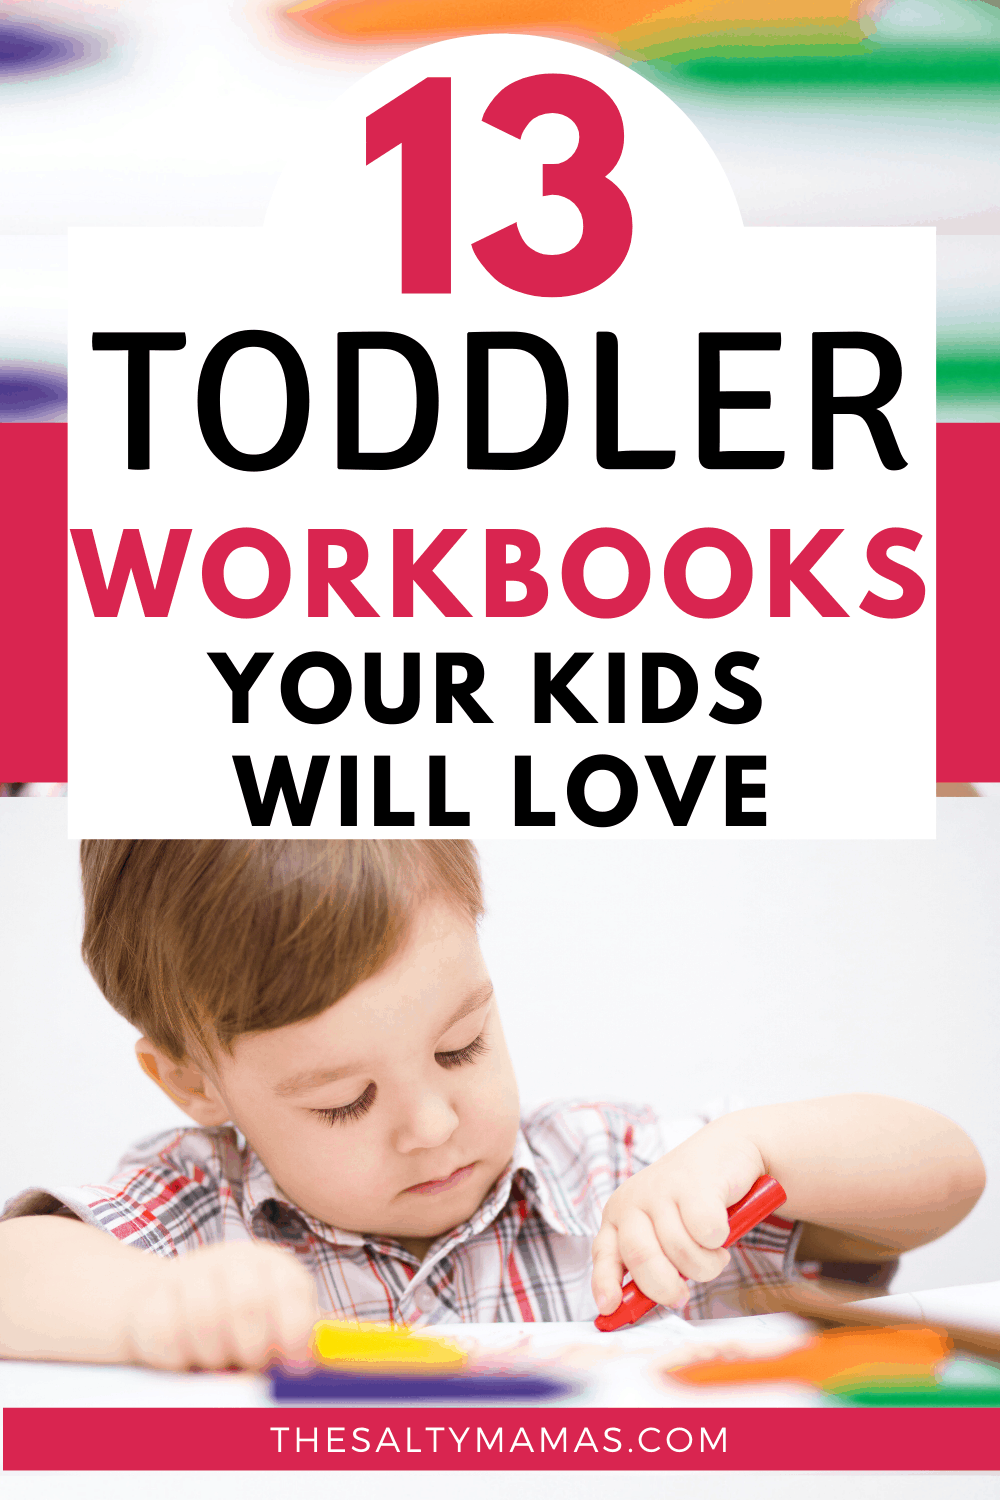 A CHILD WORKING ON A TODDLER WORKBOOK USING CRAYONS; Text overlay: 13 toddler workbooks your kids will love.